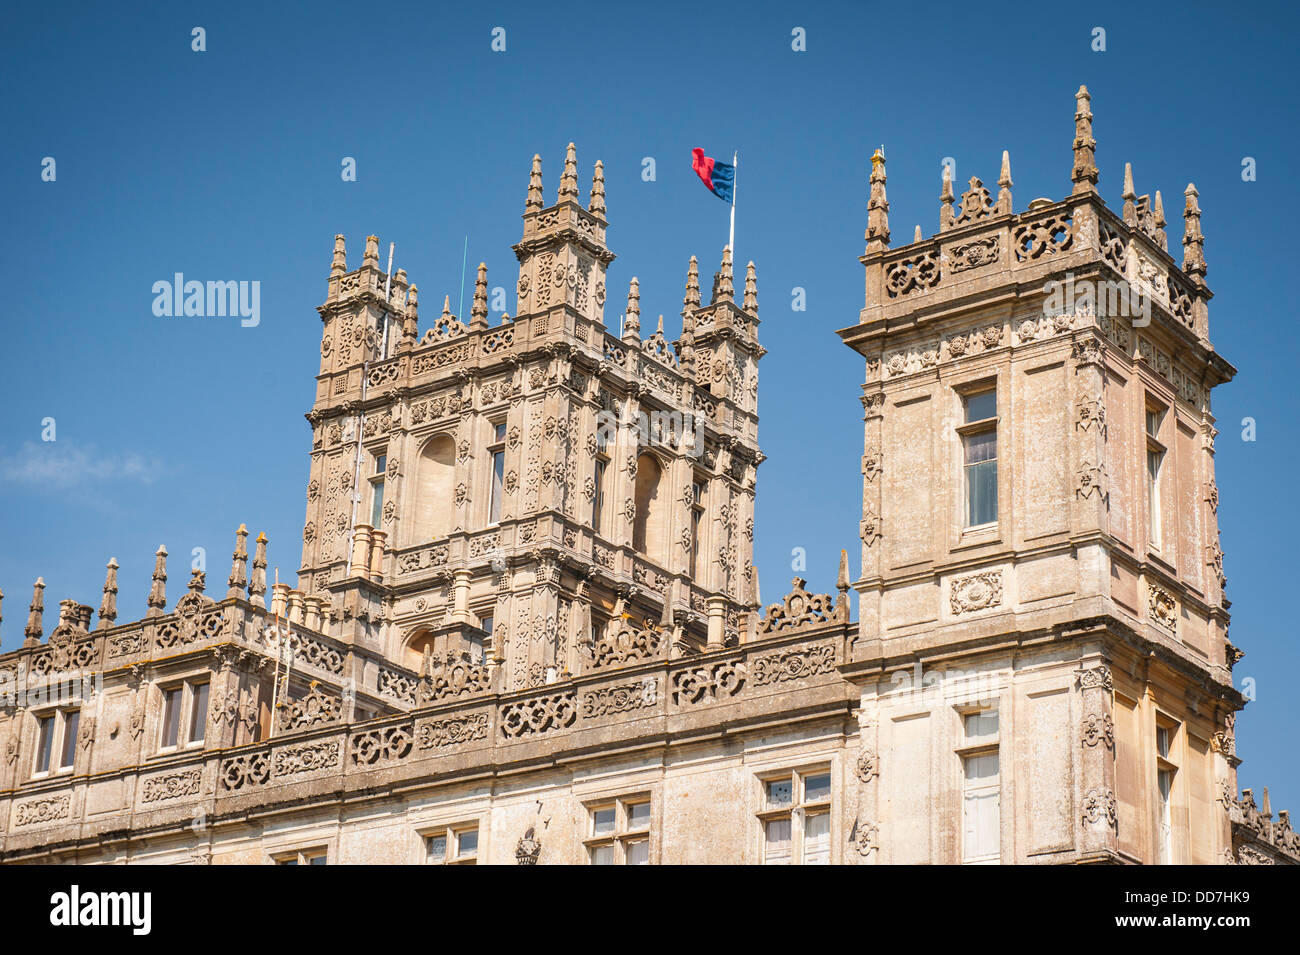 Highclere Castle Newbury Earl & Countess of Carnarvan setting TV serial show drama Downton Abbey rear exterior - Stock Image